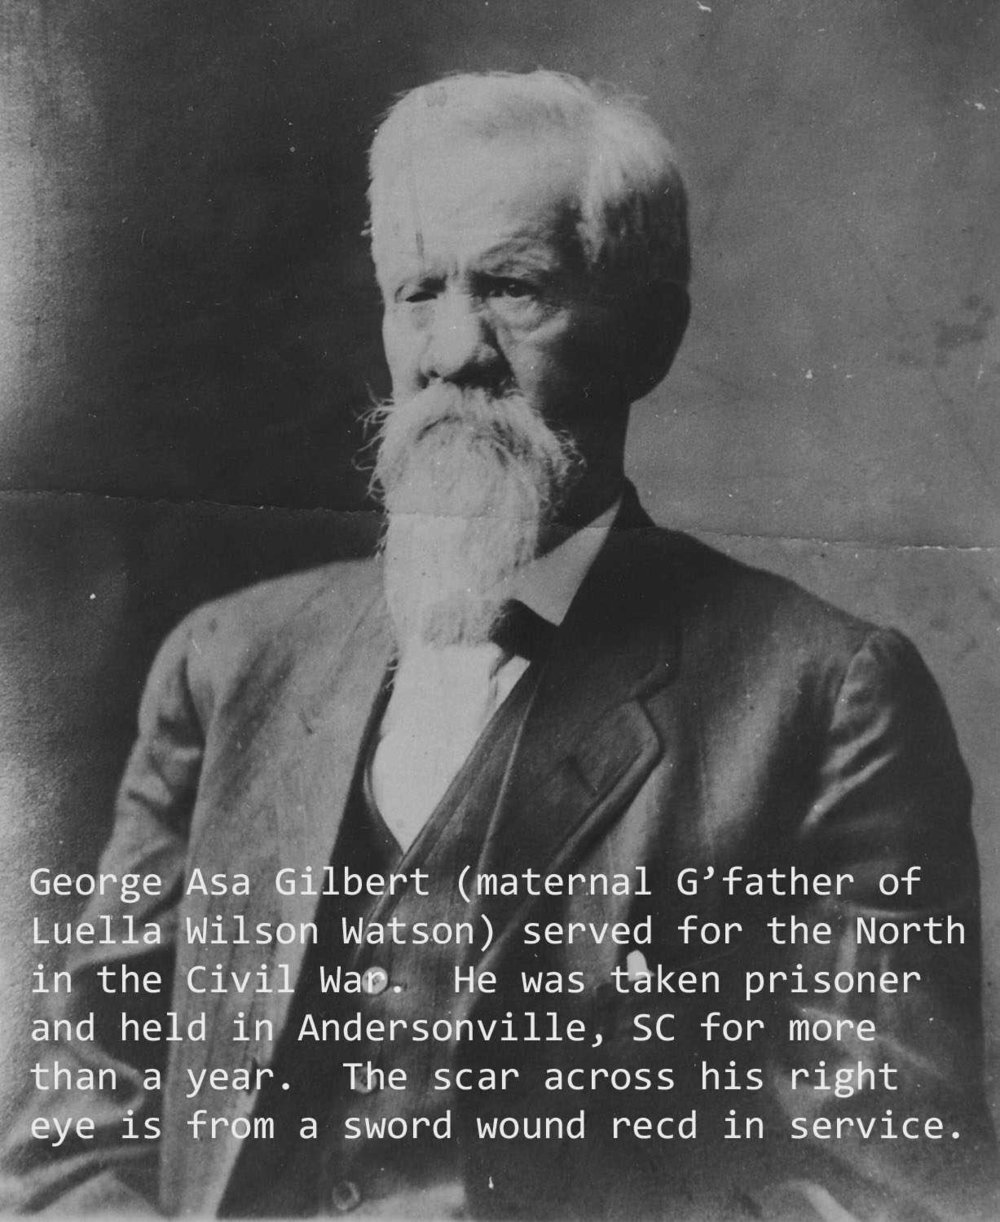 http://www.civilwarprisoners.com/search.php?database=andersonville